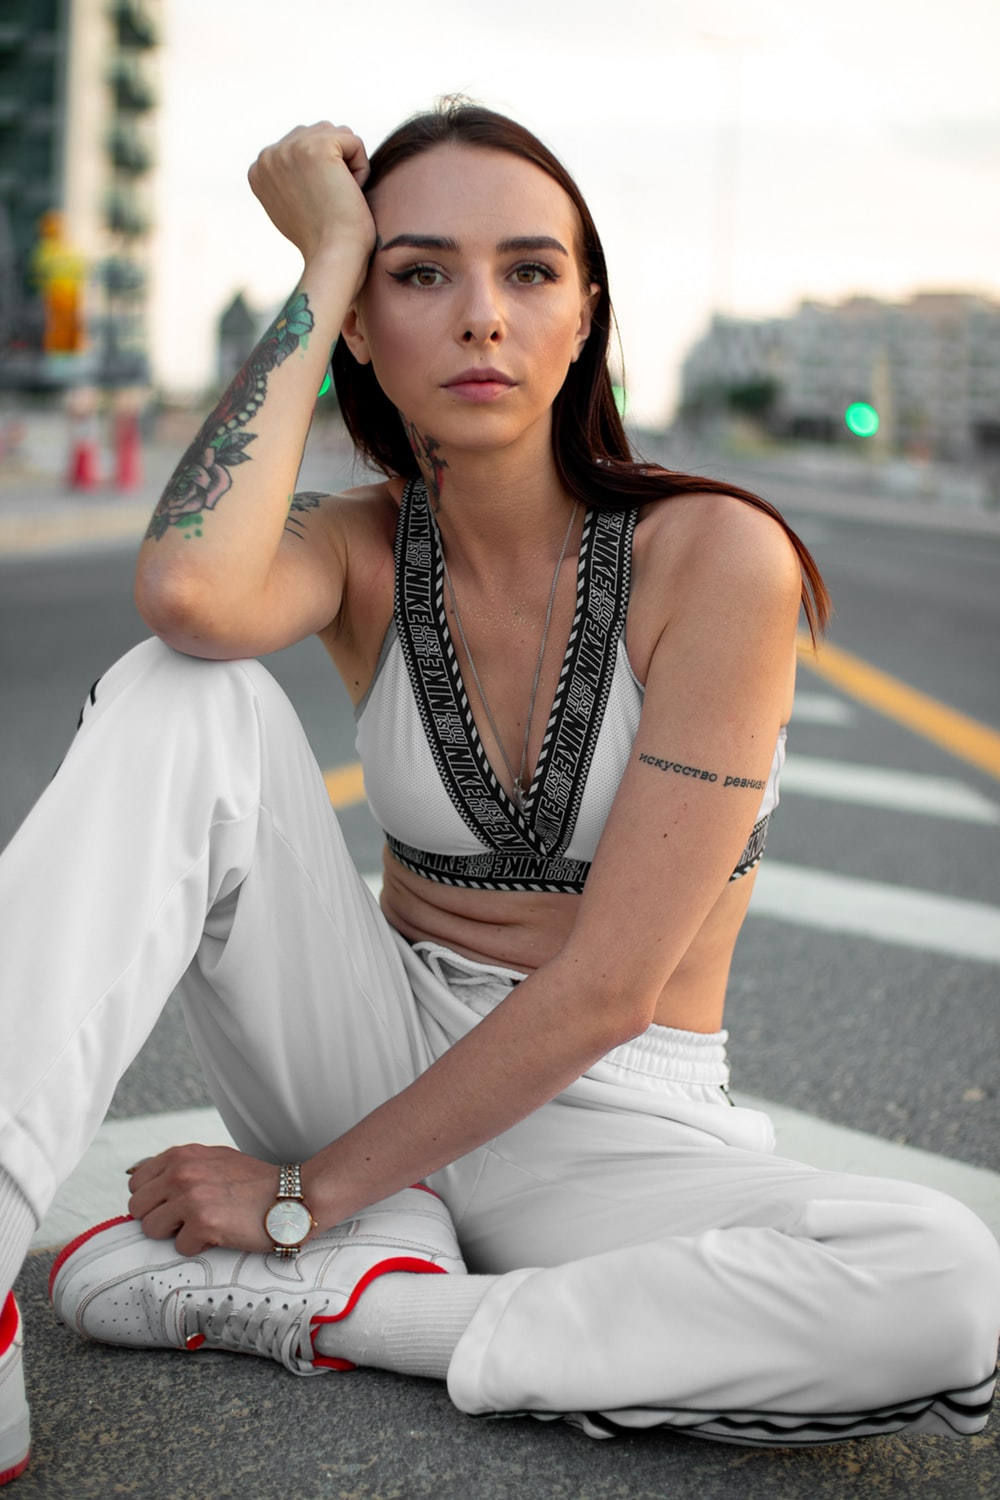 woman in white sleeveless dress sitting on road during daytime